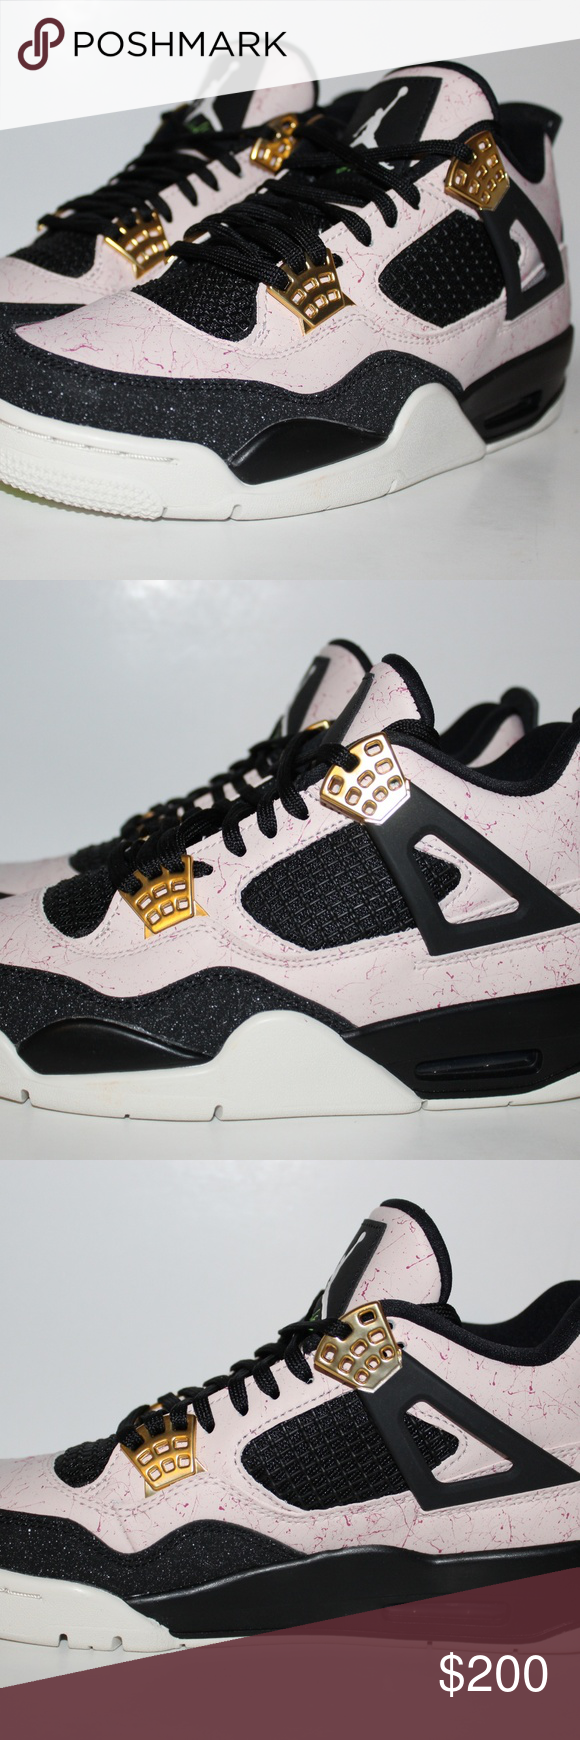 7ac5fe17279 Spotted while shopping on Poshmark: AIR JORDAN 4 RETRO Womens